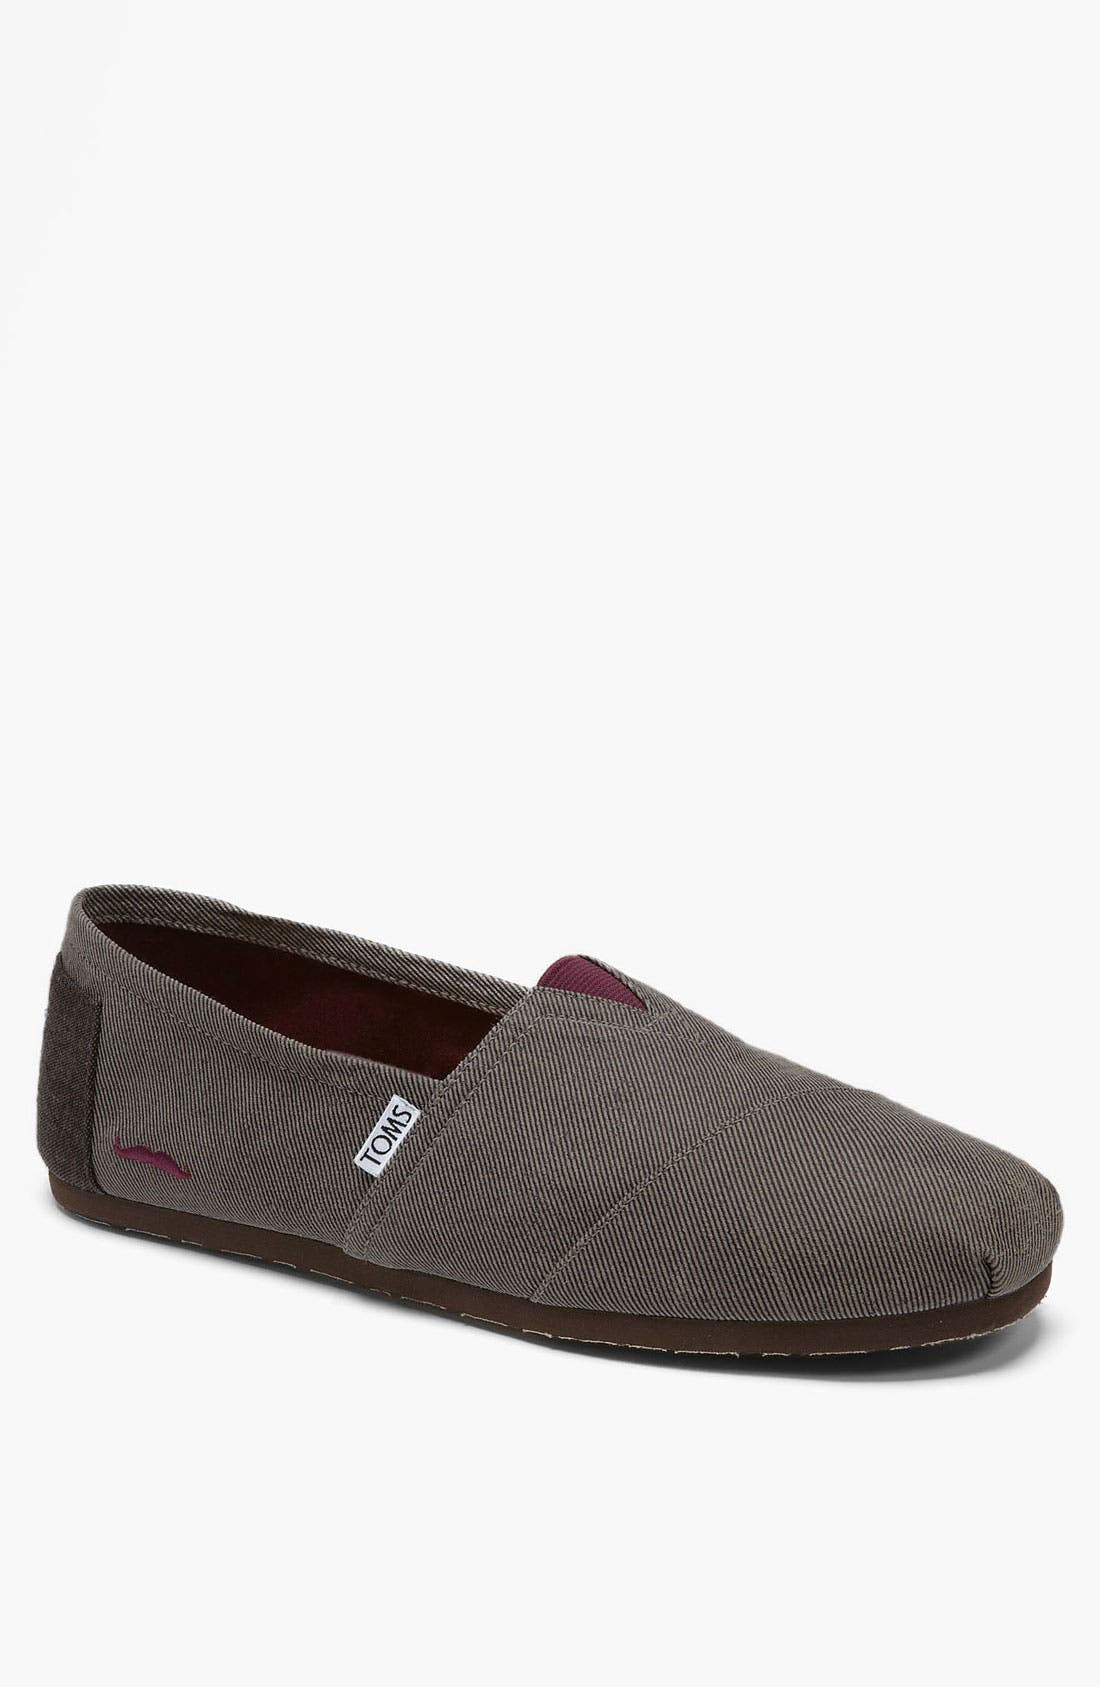 Alternate Image 1 Selected - TOMS 'Classic' Twill Slip-On (Men) (Limited Edition - Movember)